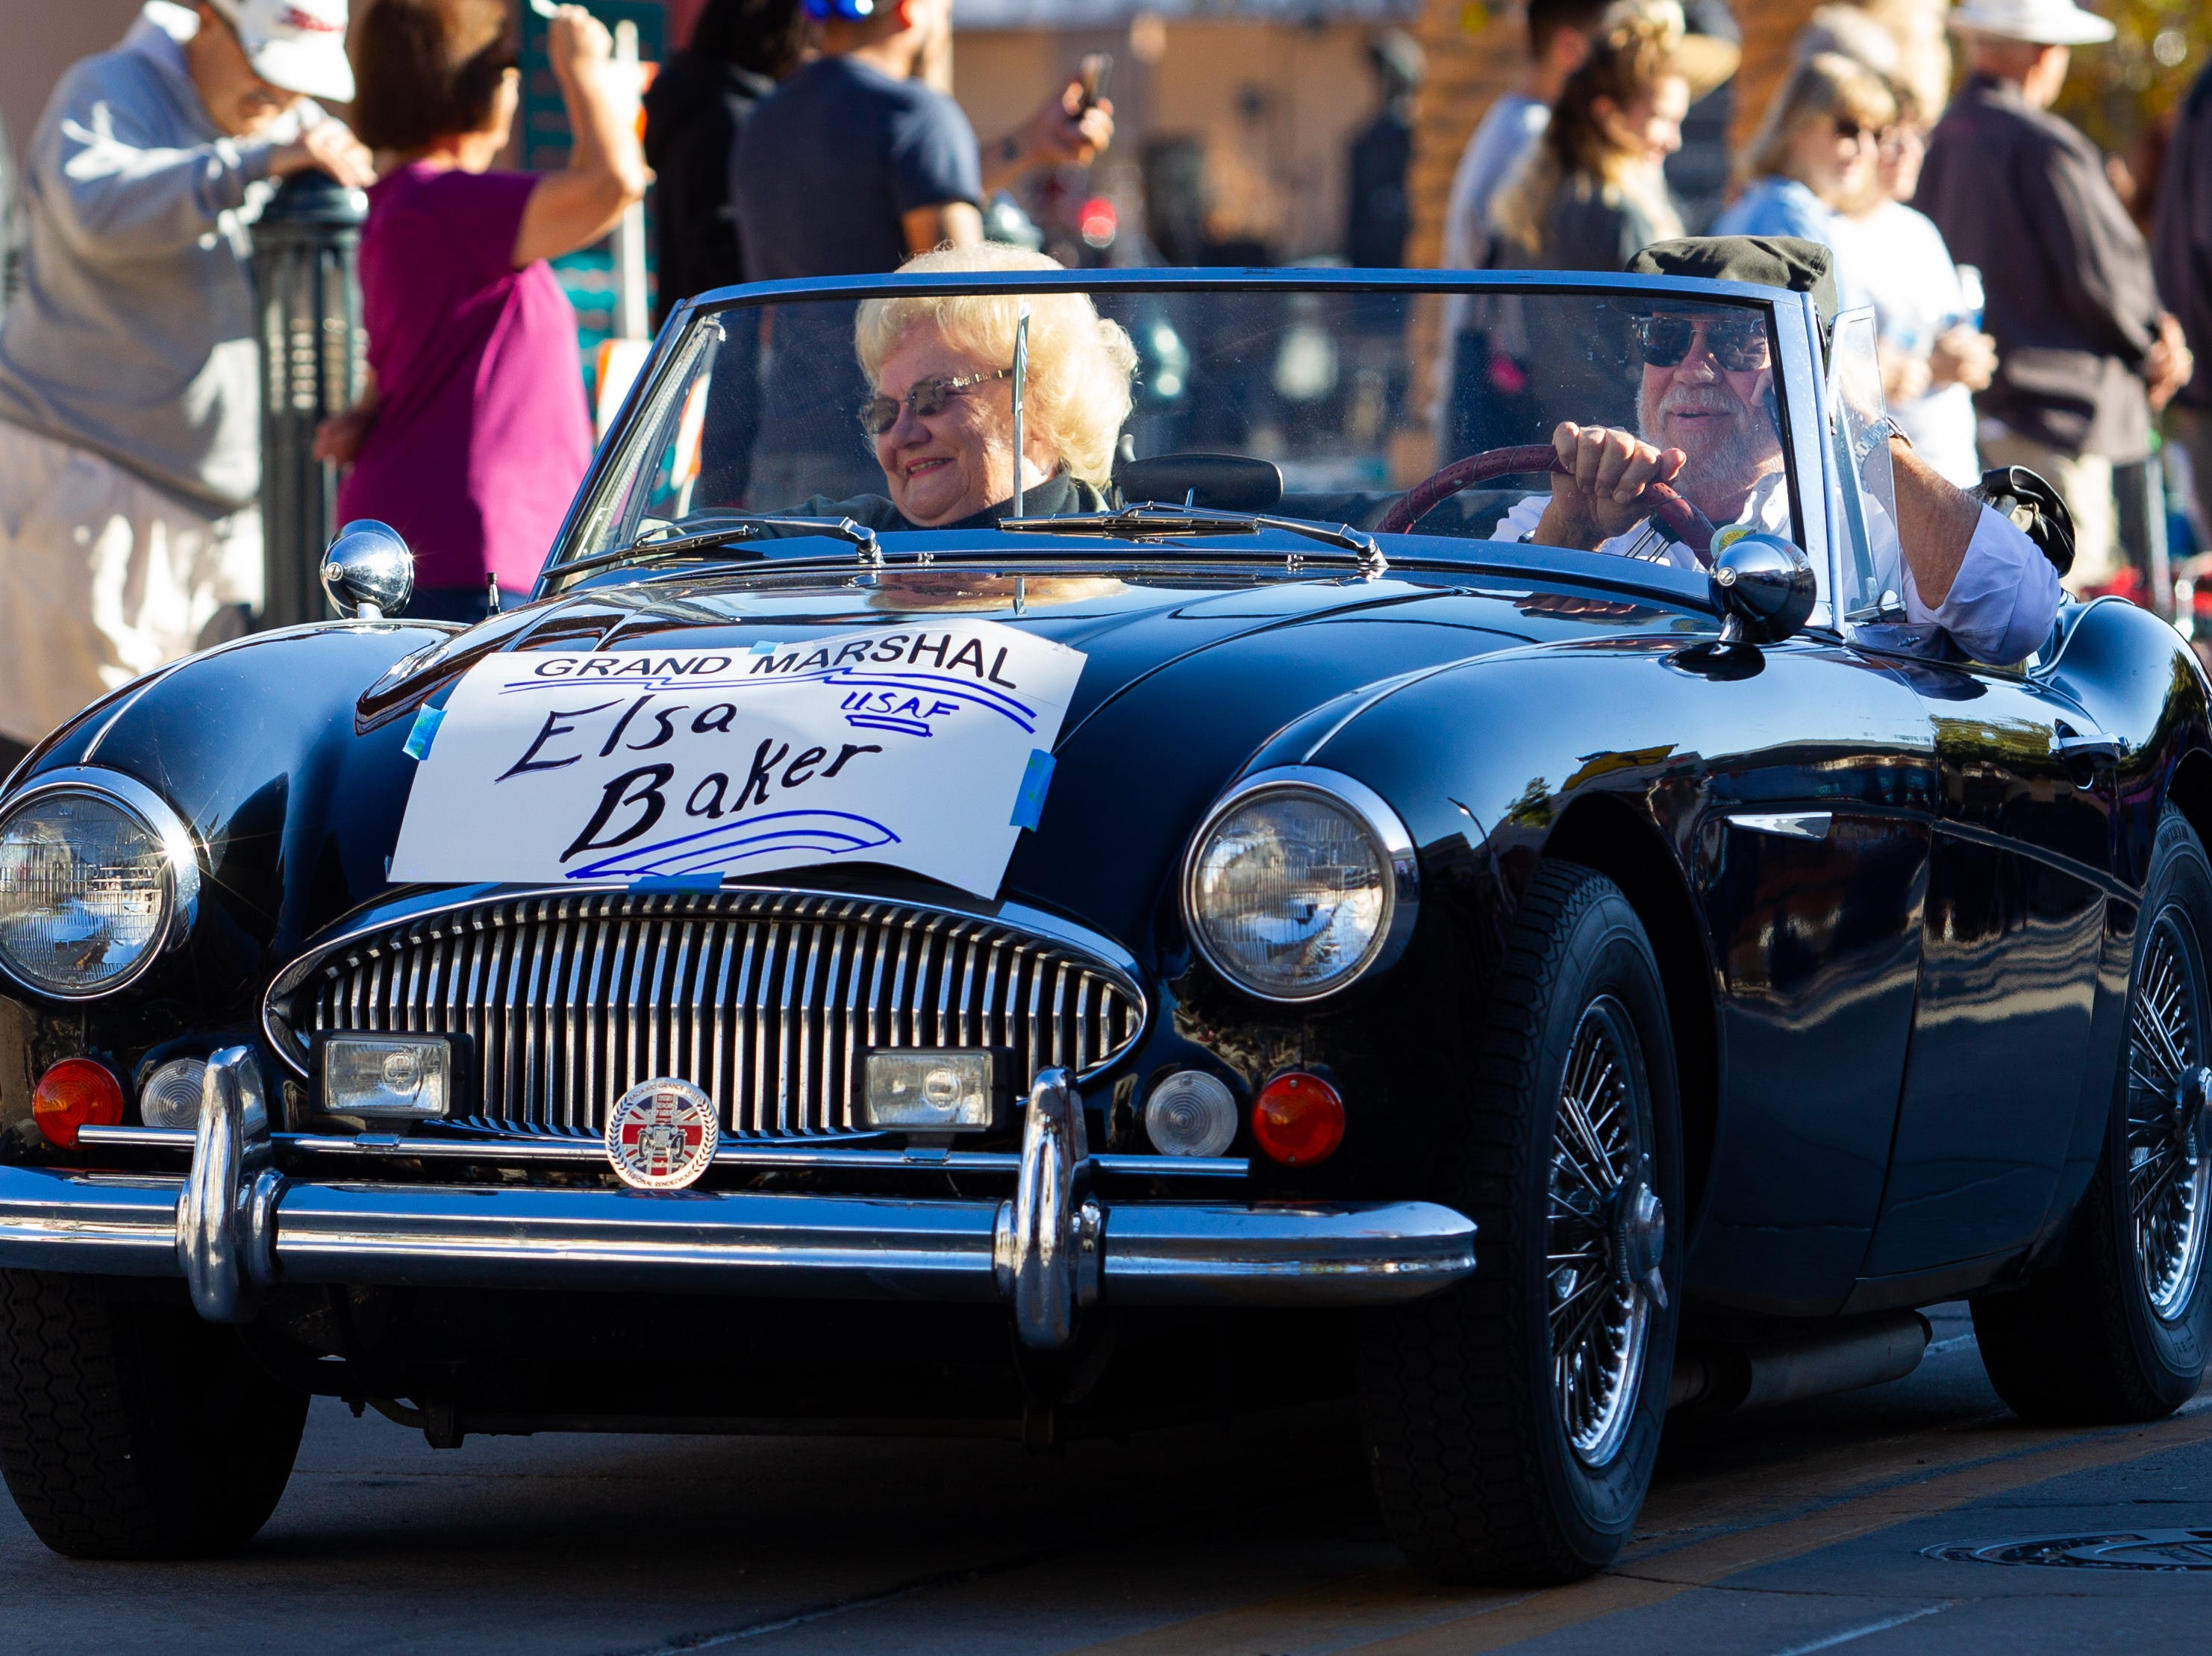 Veterans Day Parade Grand Marshal Elsa Baker, USAF Retired, makes her way down the parade route. The parade was held on November 10, 2018.